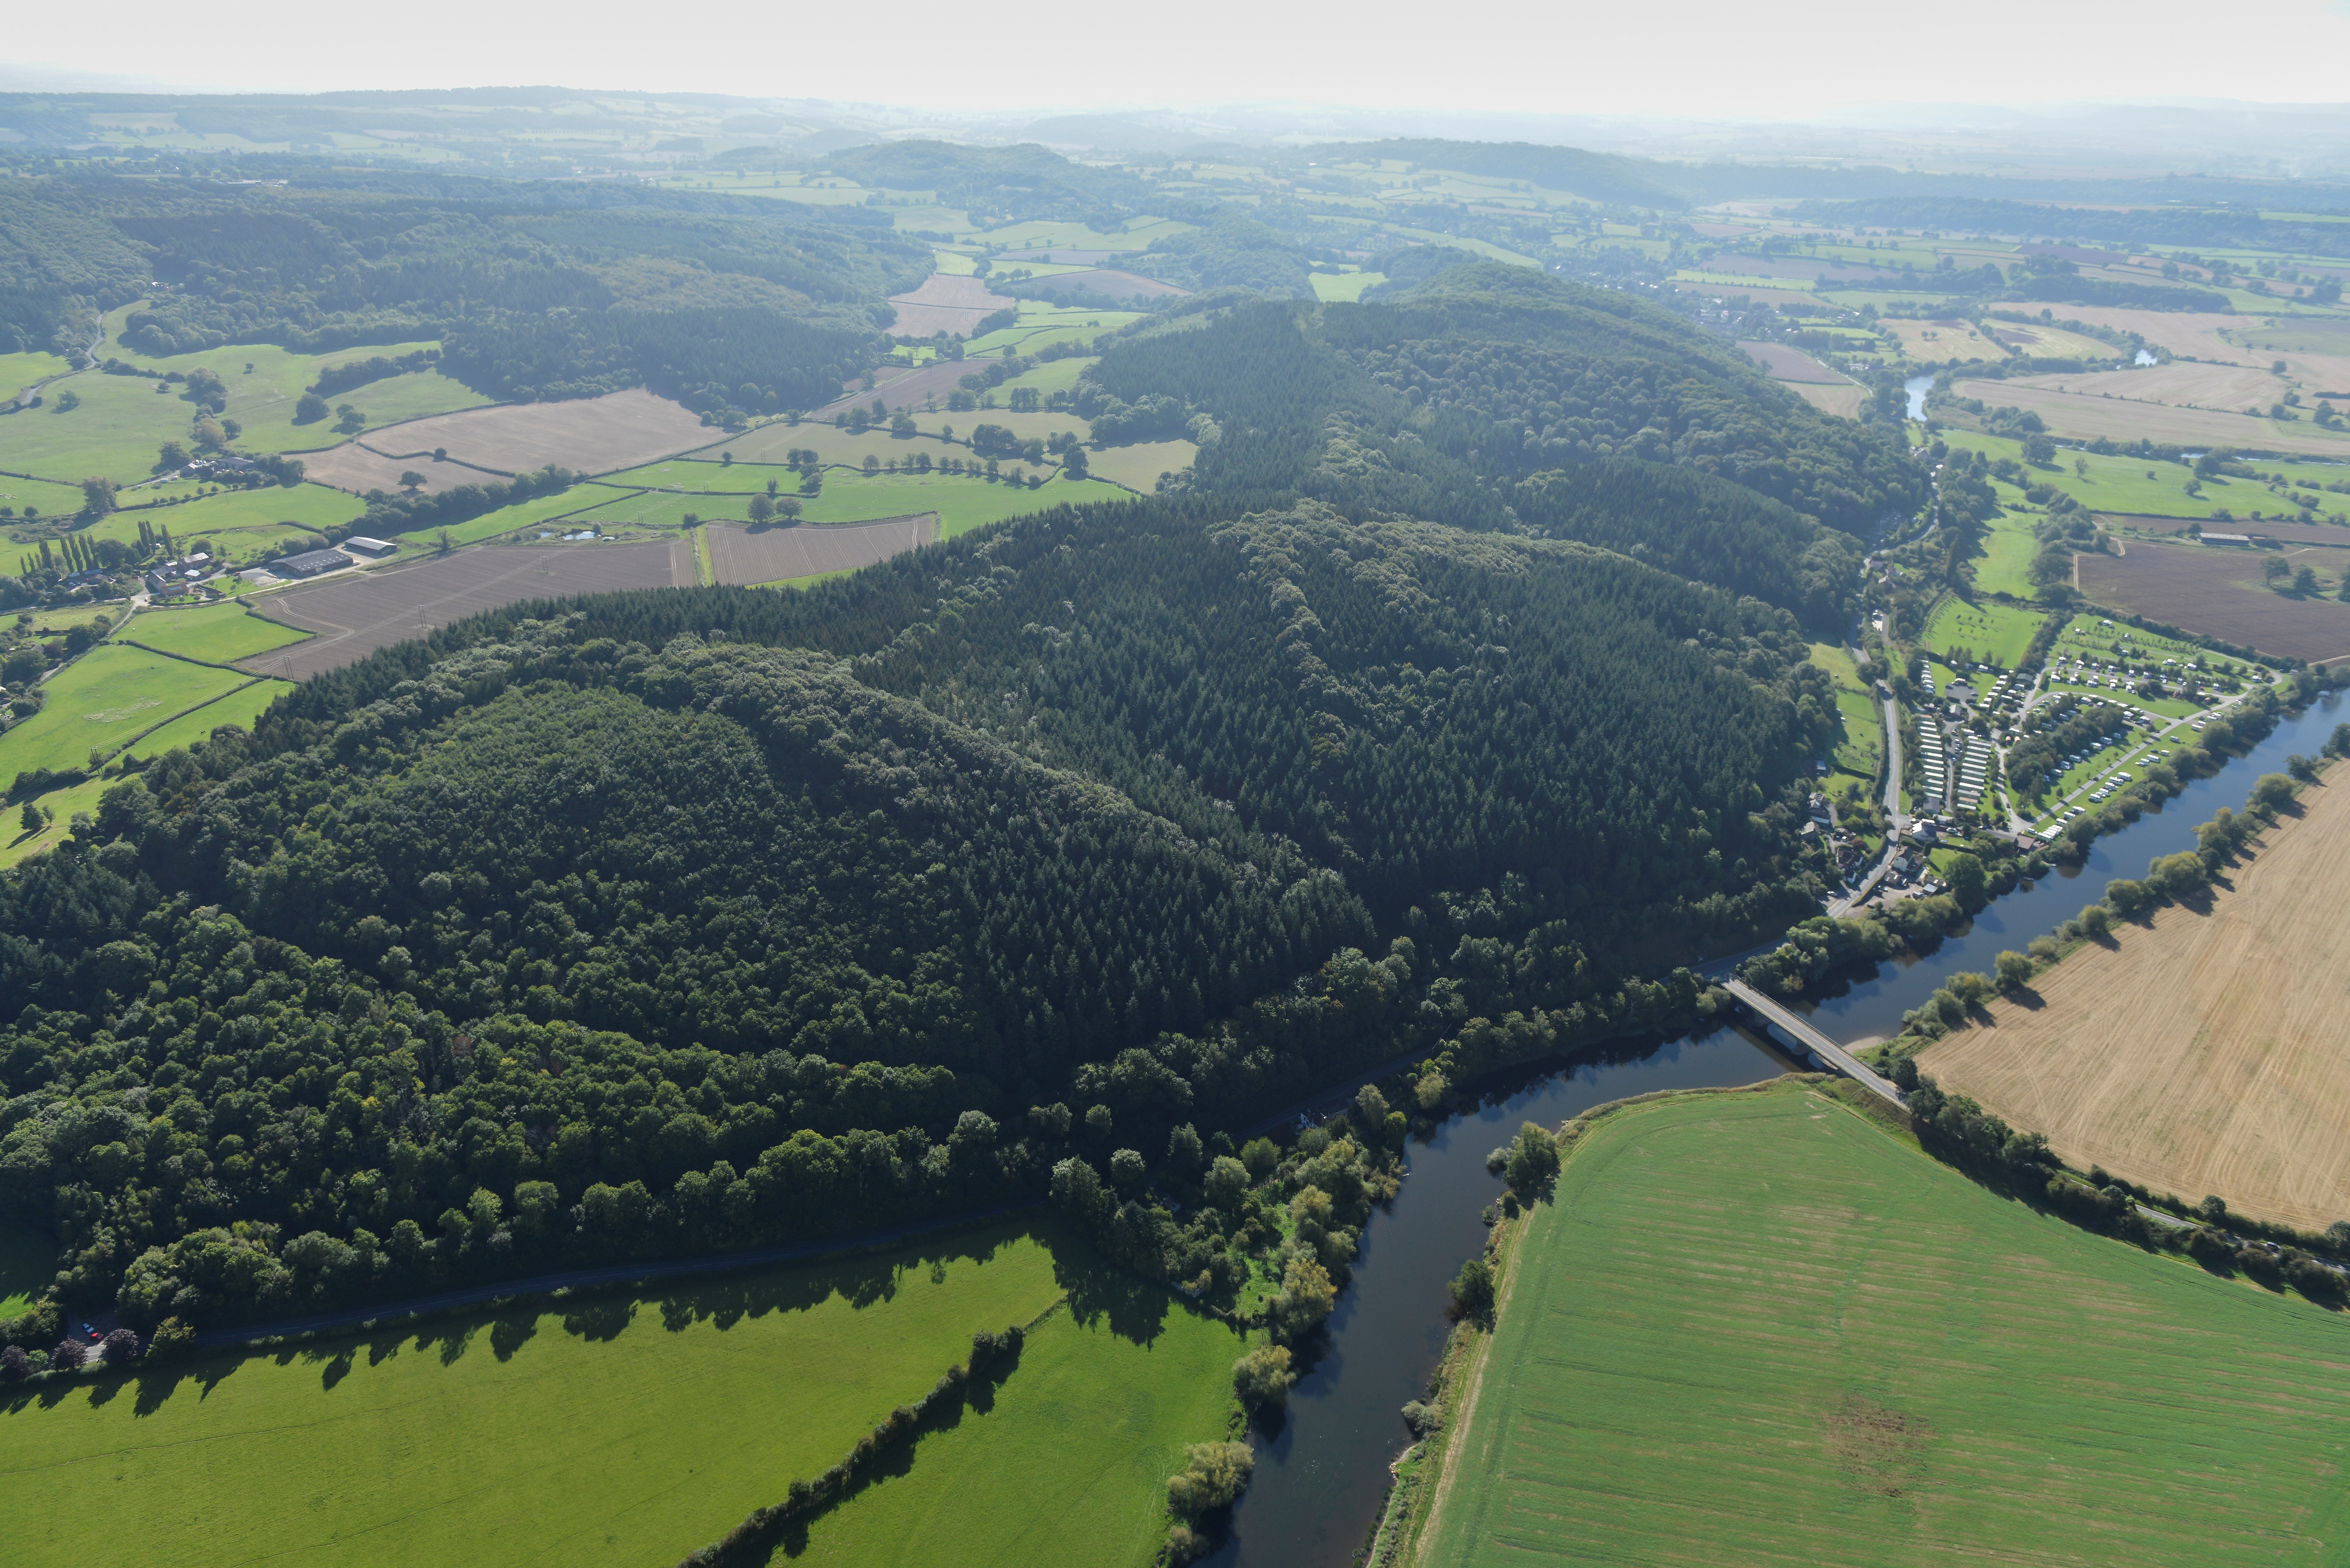 Ariel shot of the River Wye and Lucksall Caravan and Camping park.